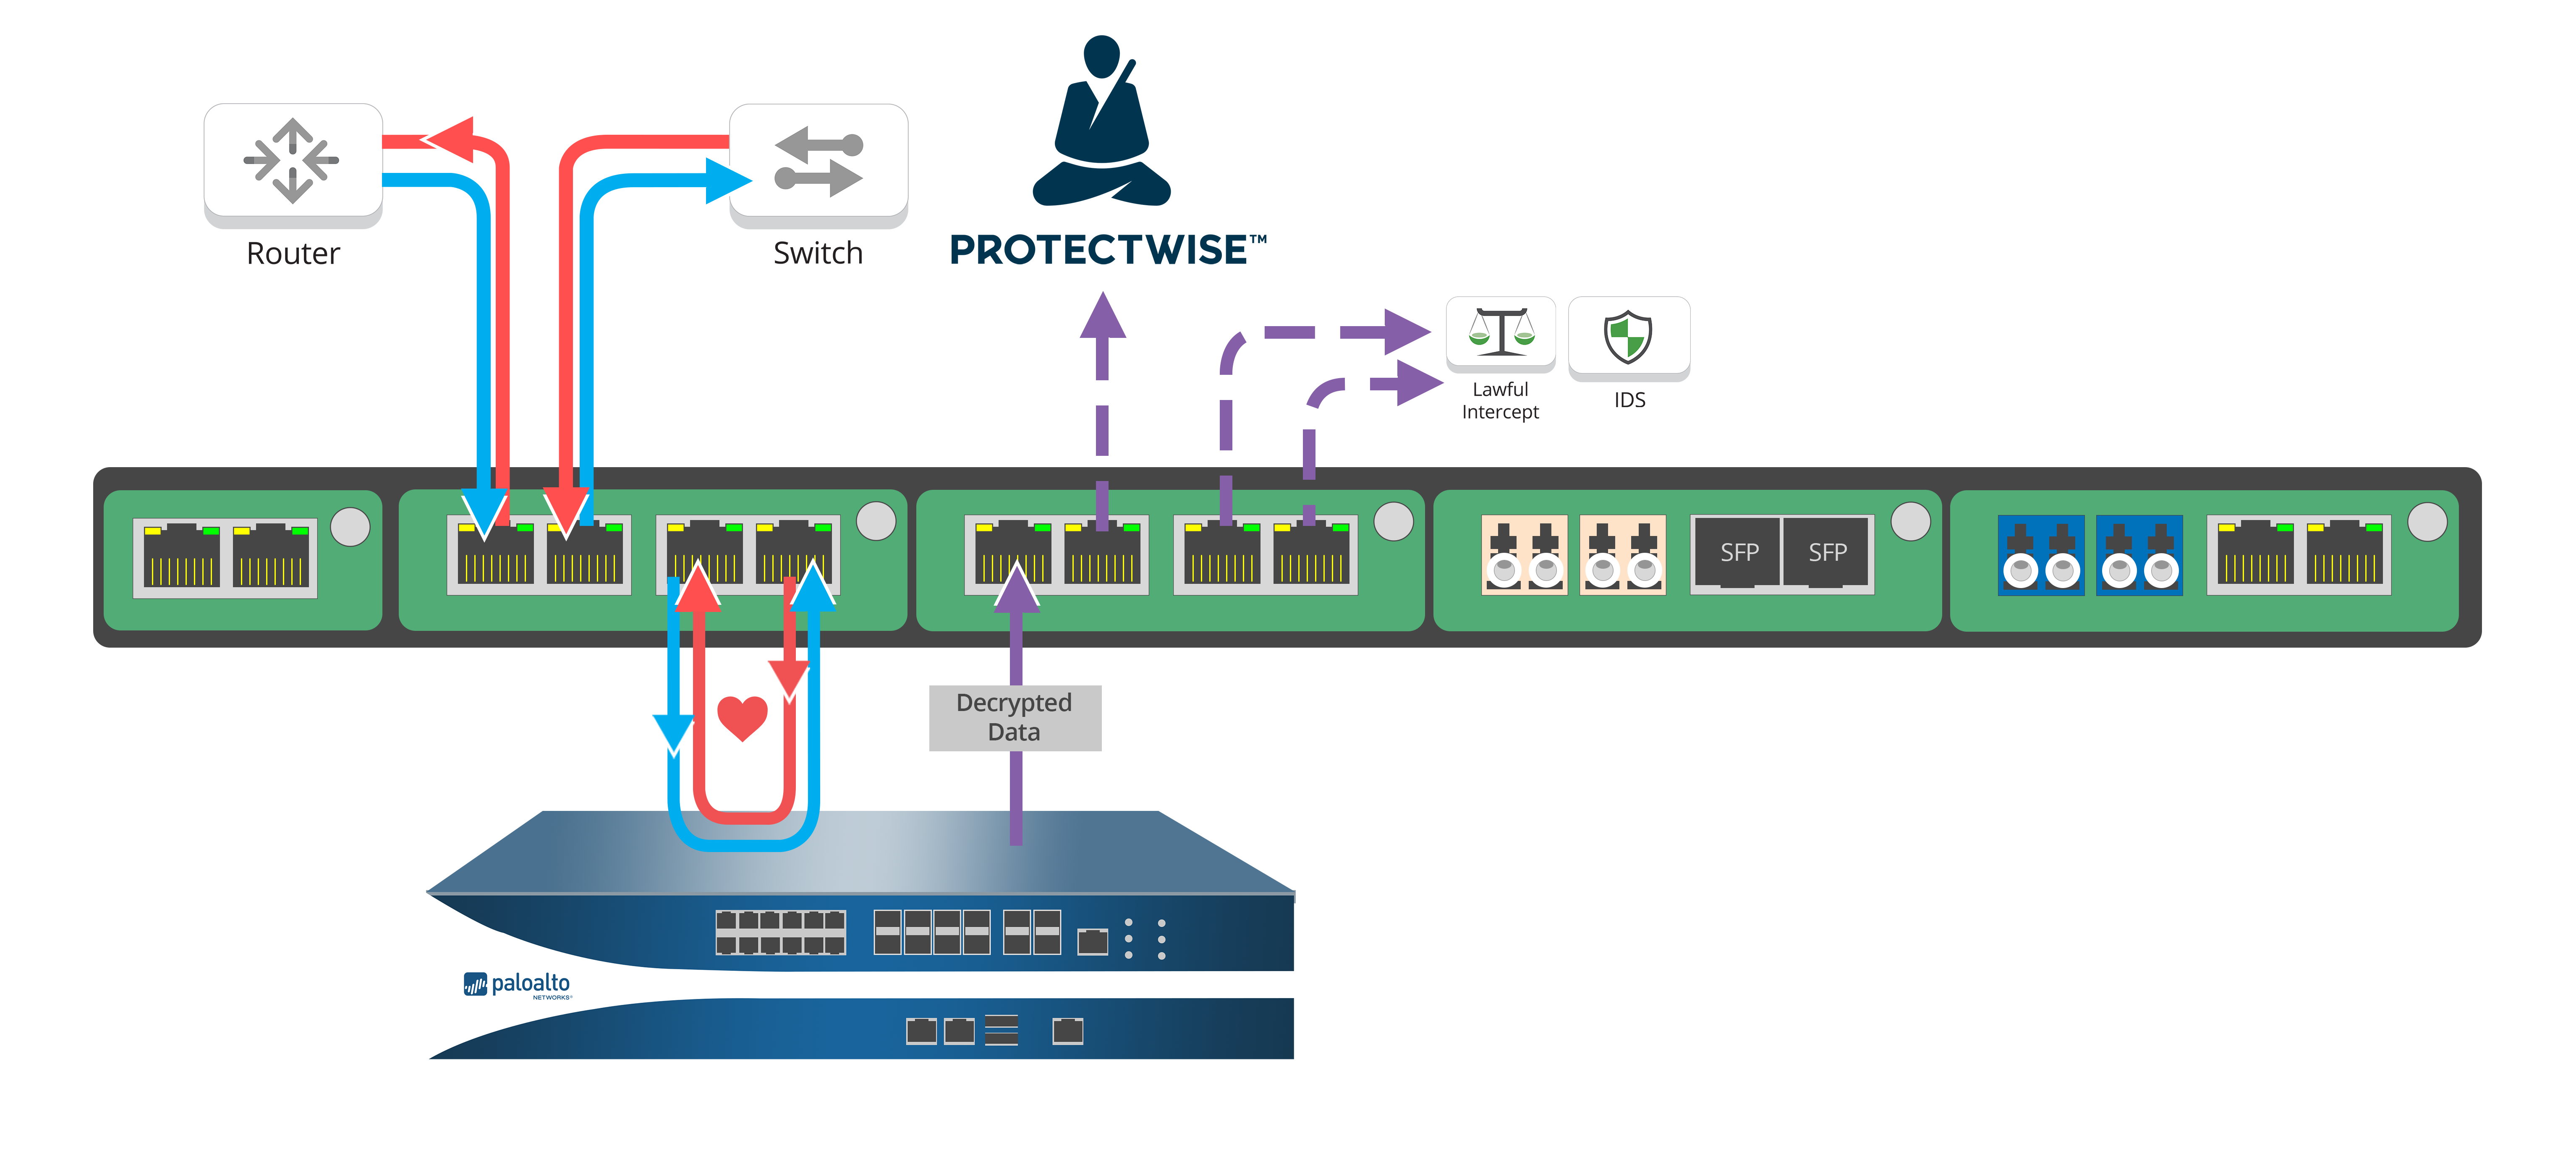 1U network flow with Palo Alto networks and Protectwise